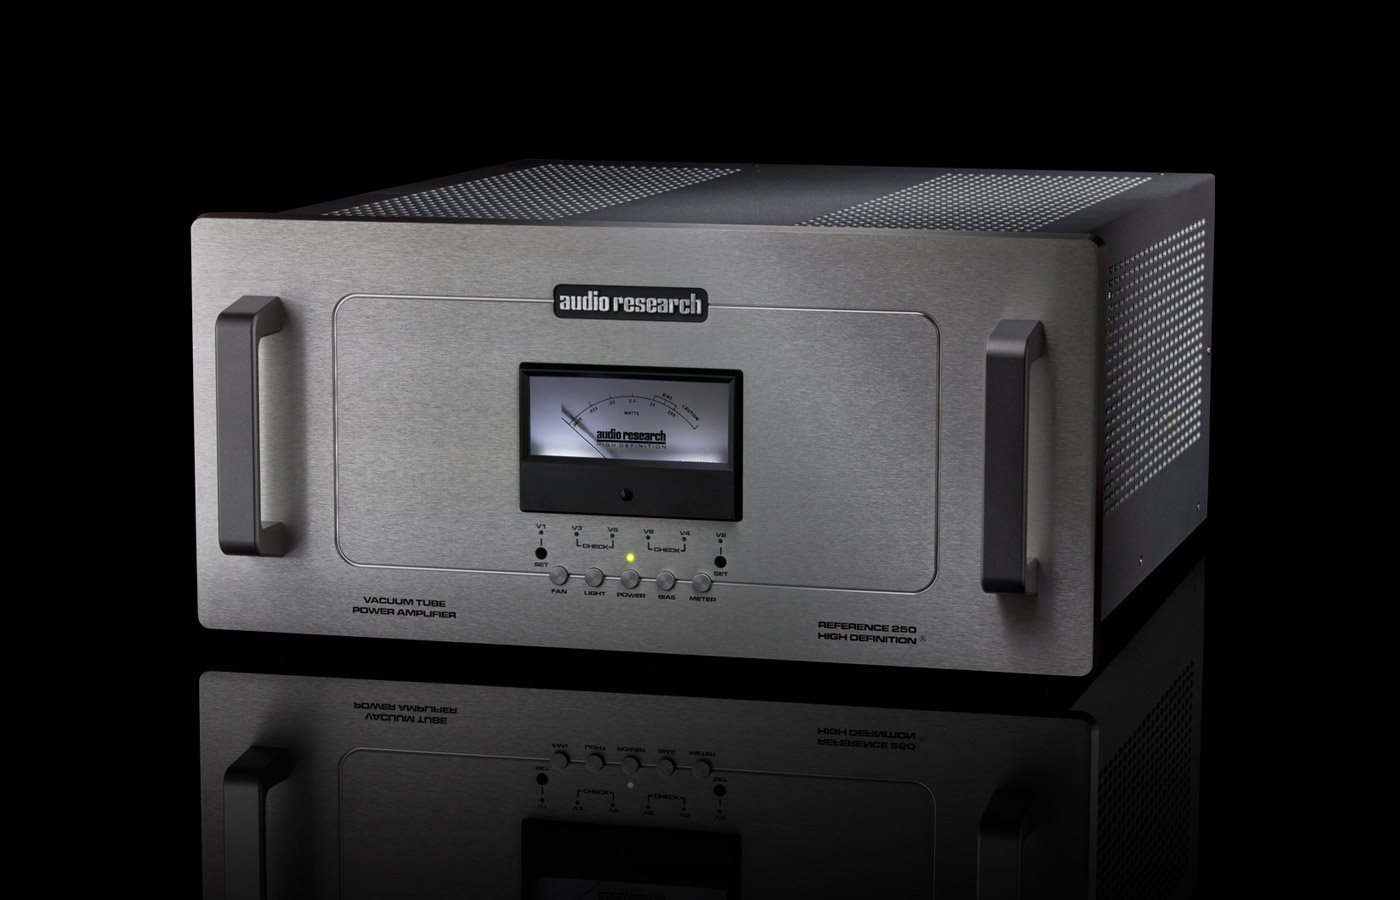 AUDIO RESEARCH REFERENCE 250 SE AMPLIFIER World-Class